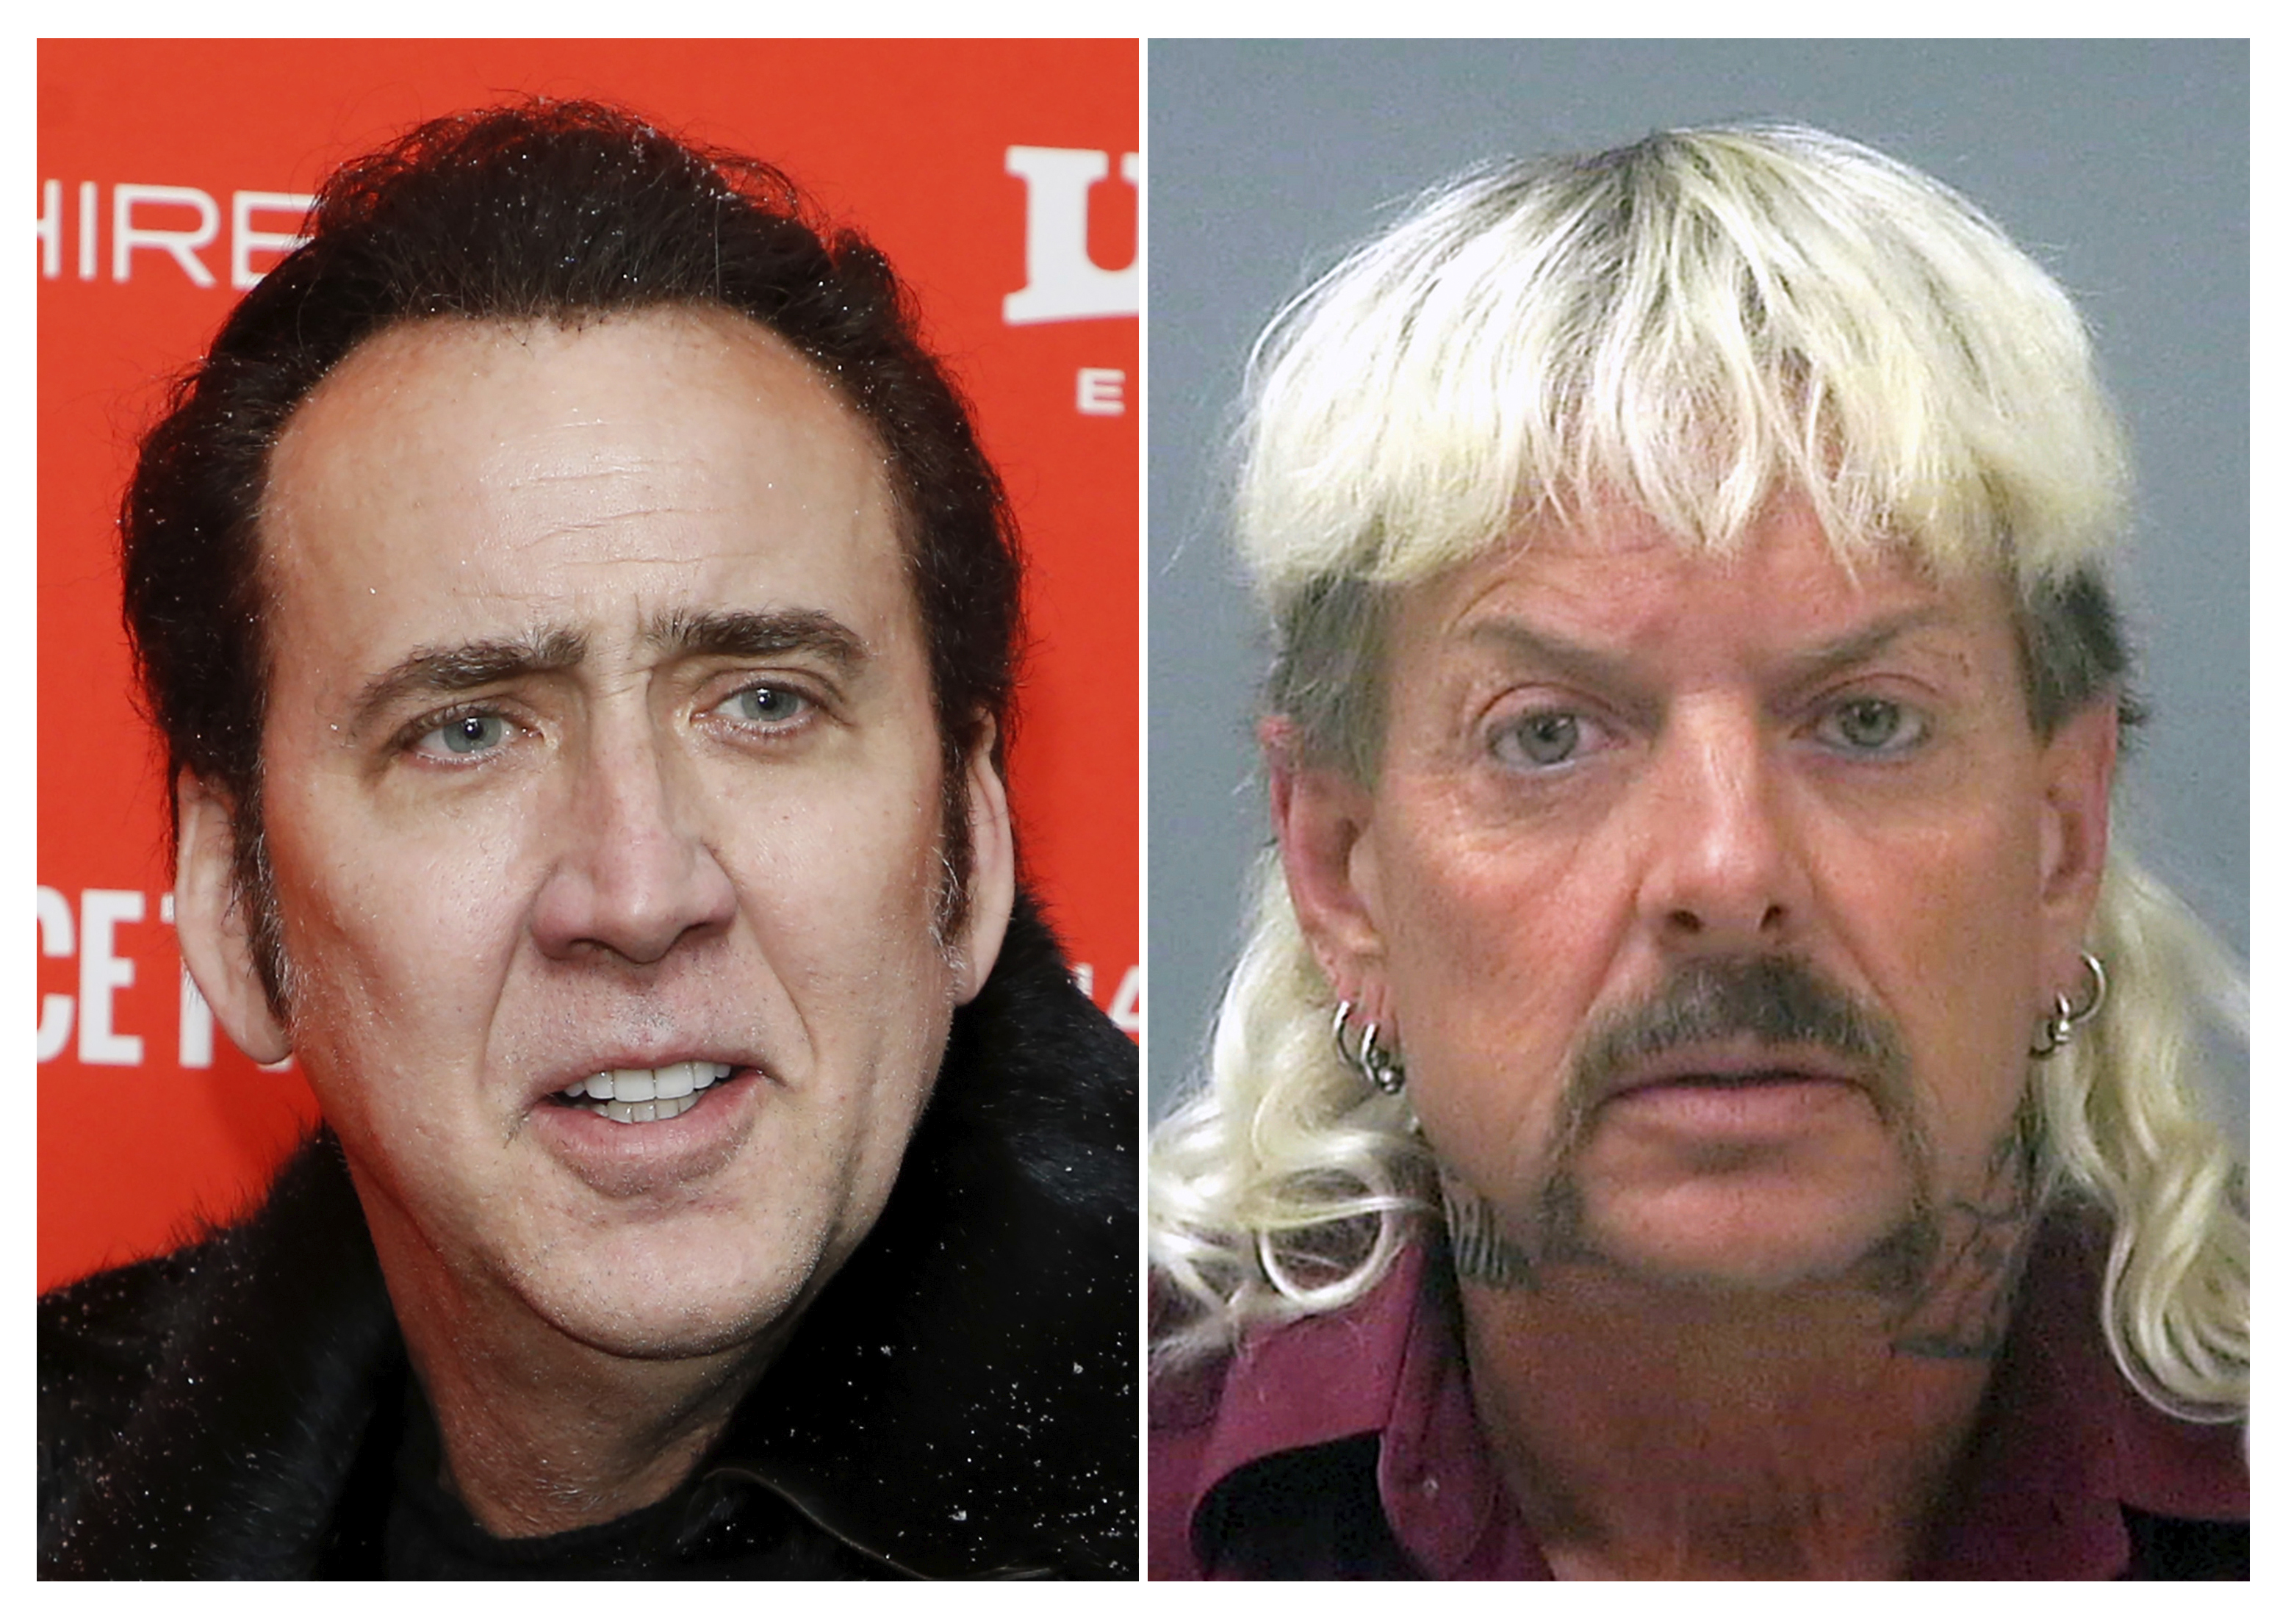 This combination photo shows actor Nicolas Cage at the premiere of  Mandy  during the 2018 Sundance Film Festival in Park City, Utah. on Jan. 19, 2018, left, and a booking mug of provided by the Santa Rosa County Jail in Milton, Fla., shows Joseph Maldonado-Passage, also known as  Joe Exotic.